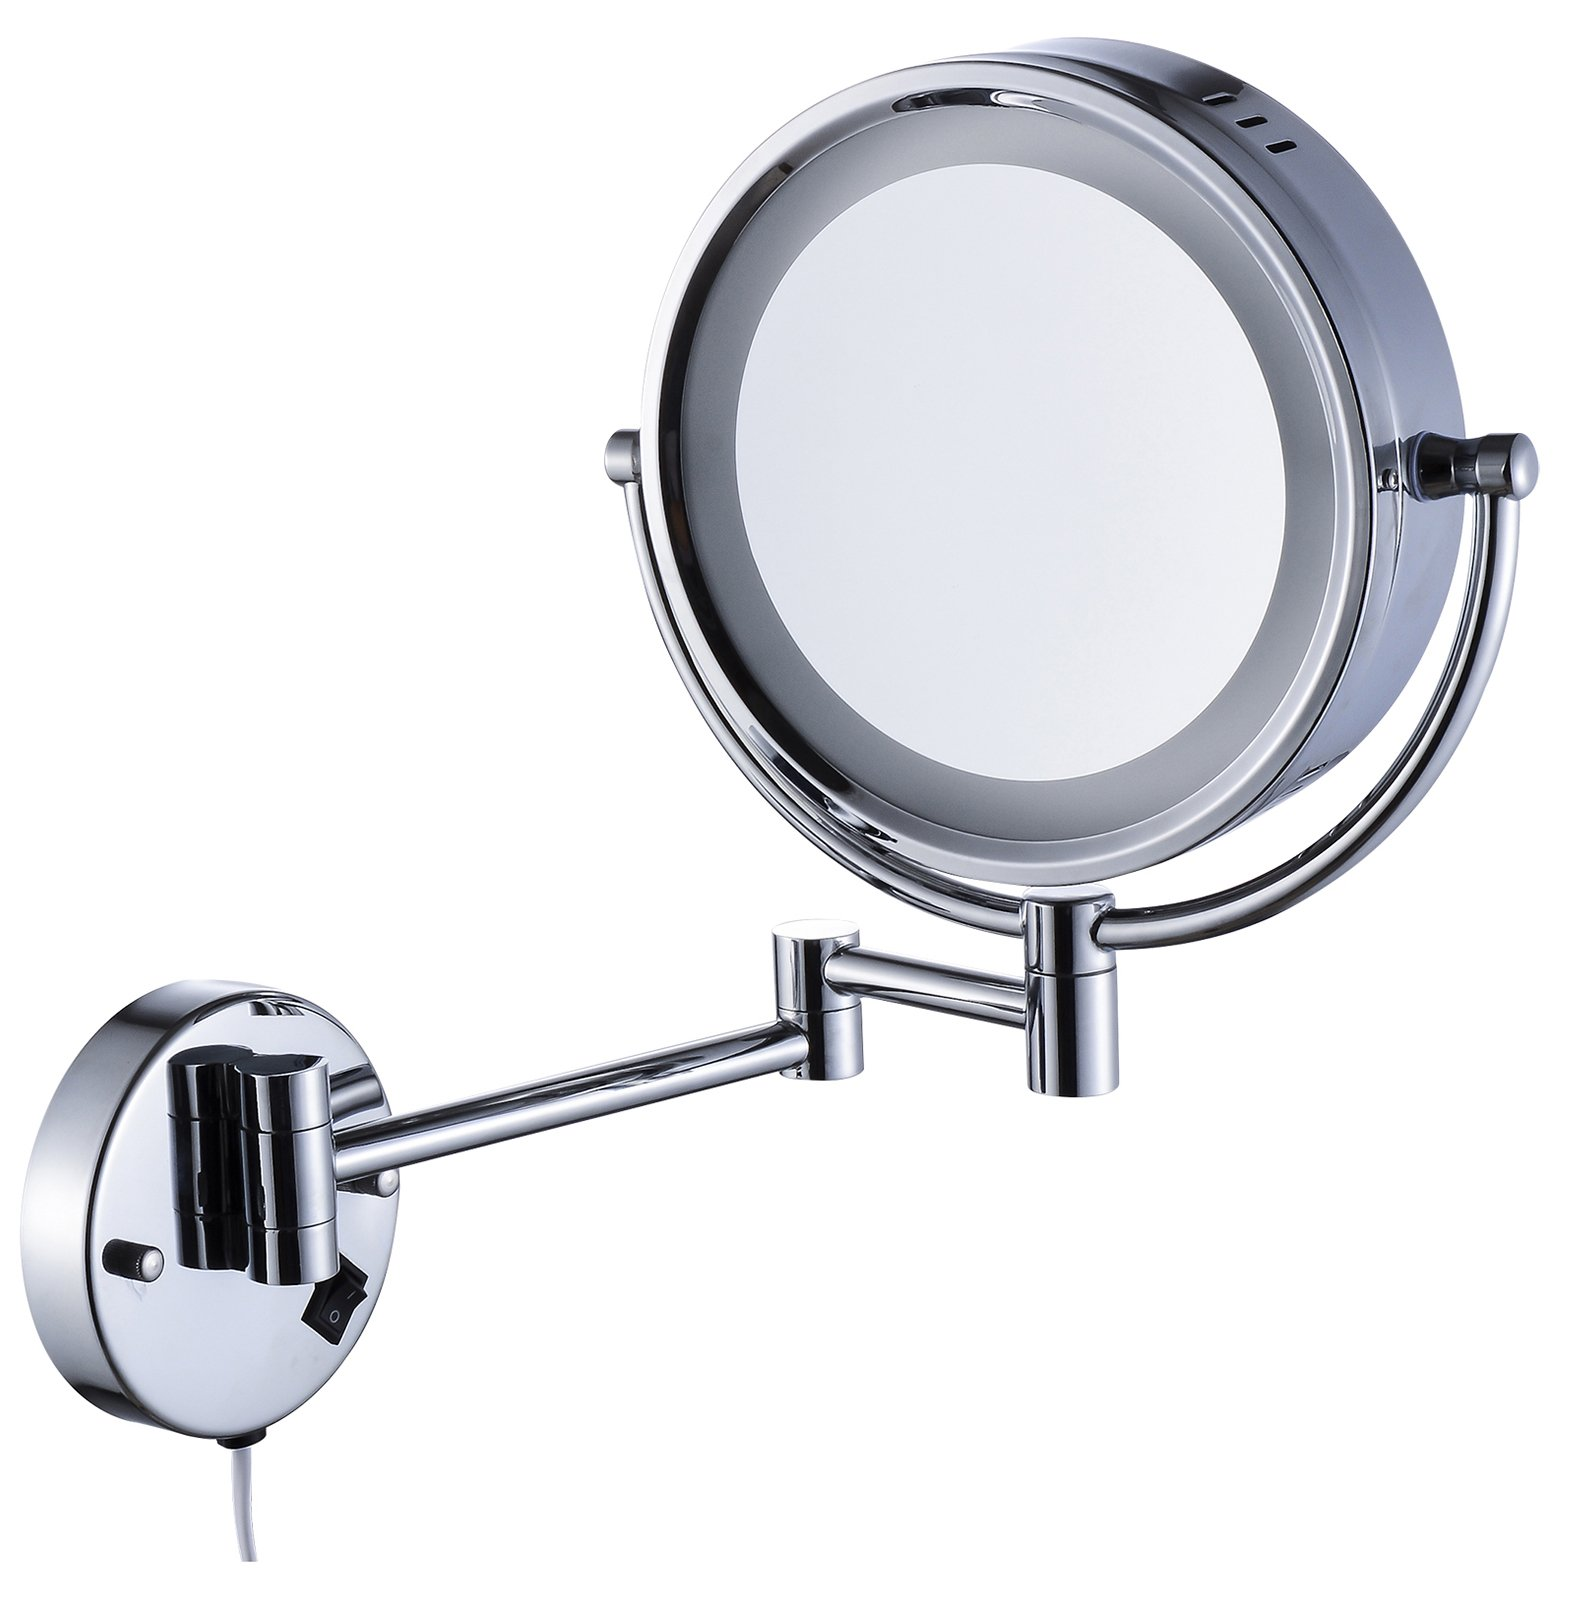 Cavoli Wall Mounted Makeup Mirror with LED Lighted 10x Magnification,8.5 Inches,Bathroom and Hotel, Chrome Finish,Made of Brass by Cavoli